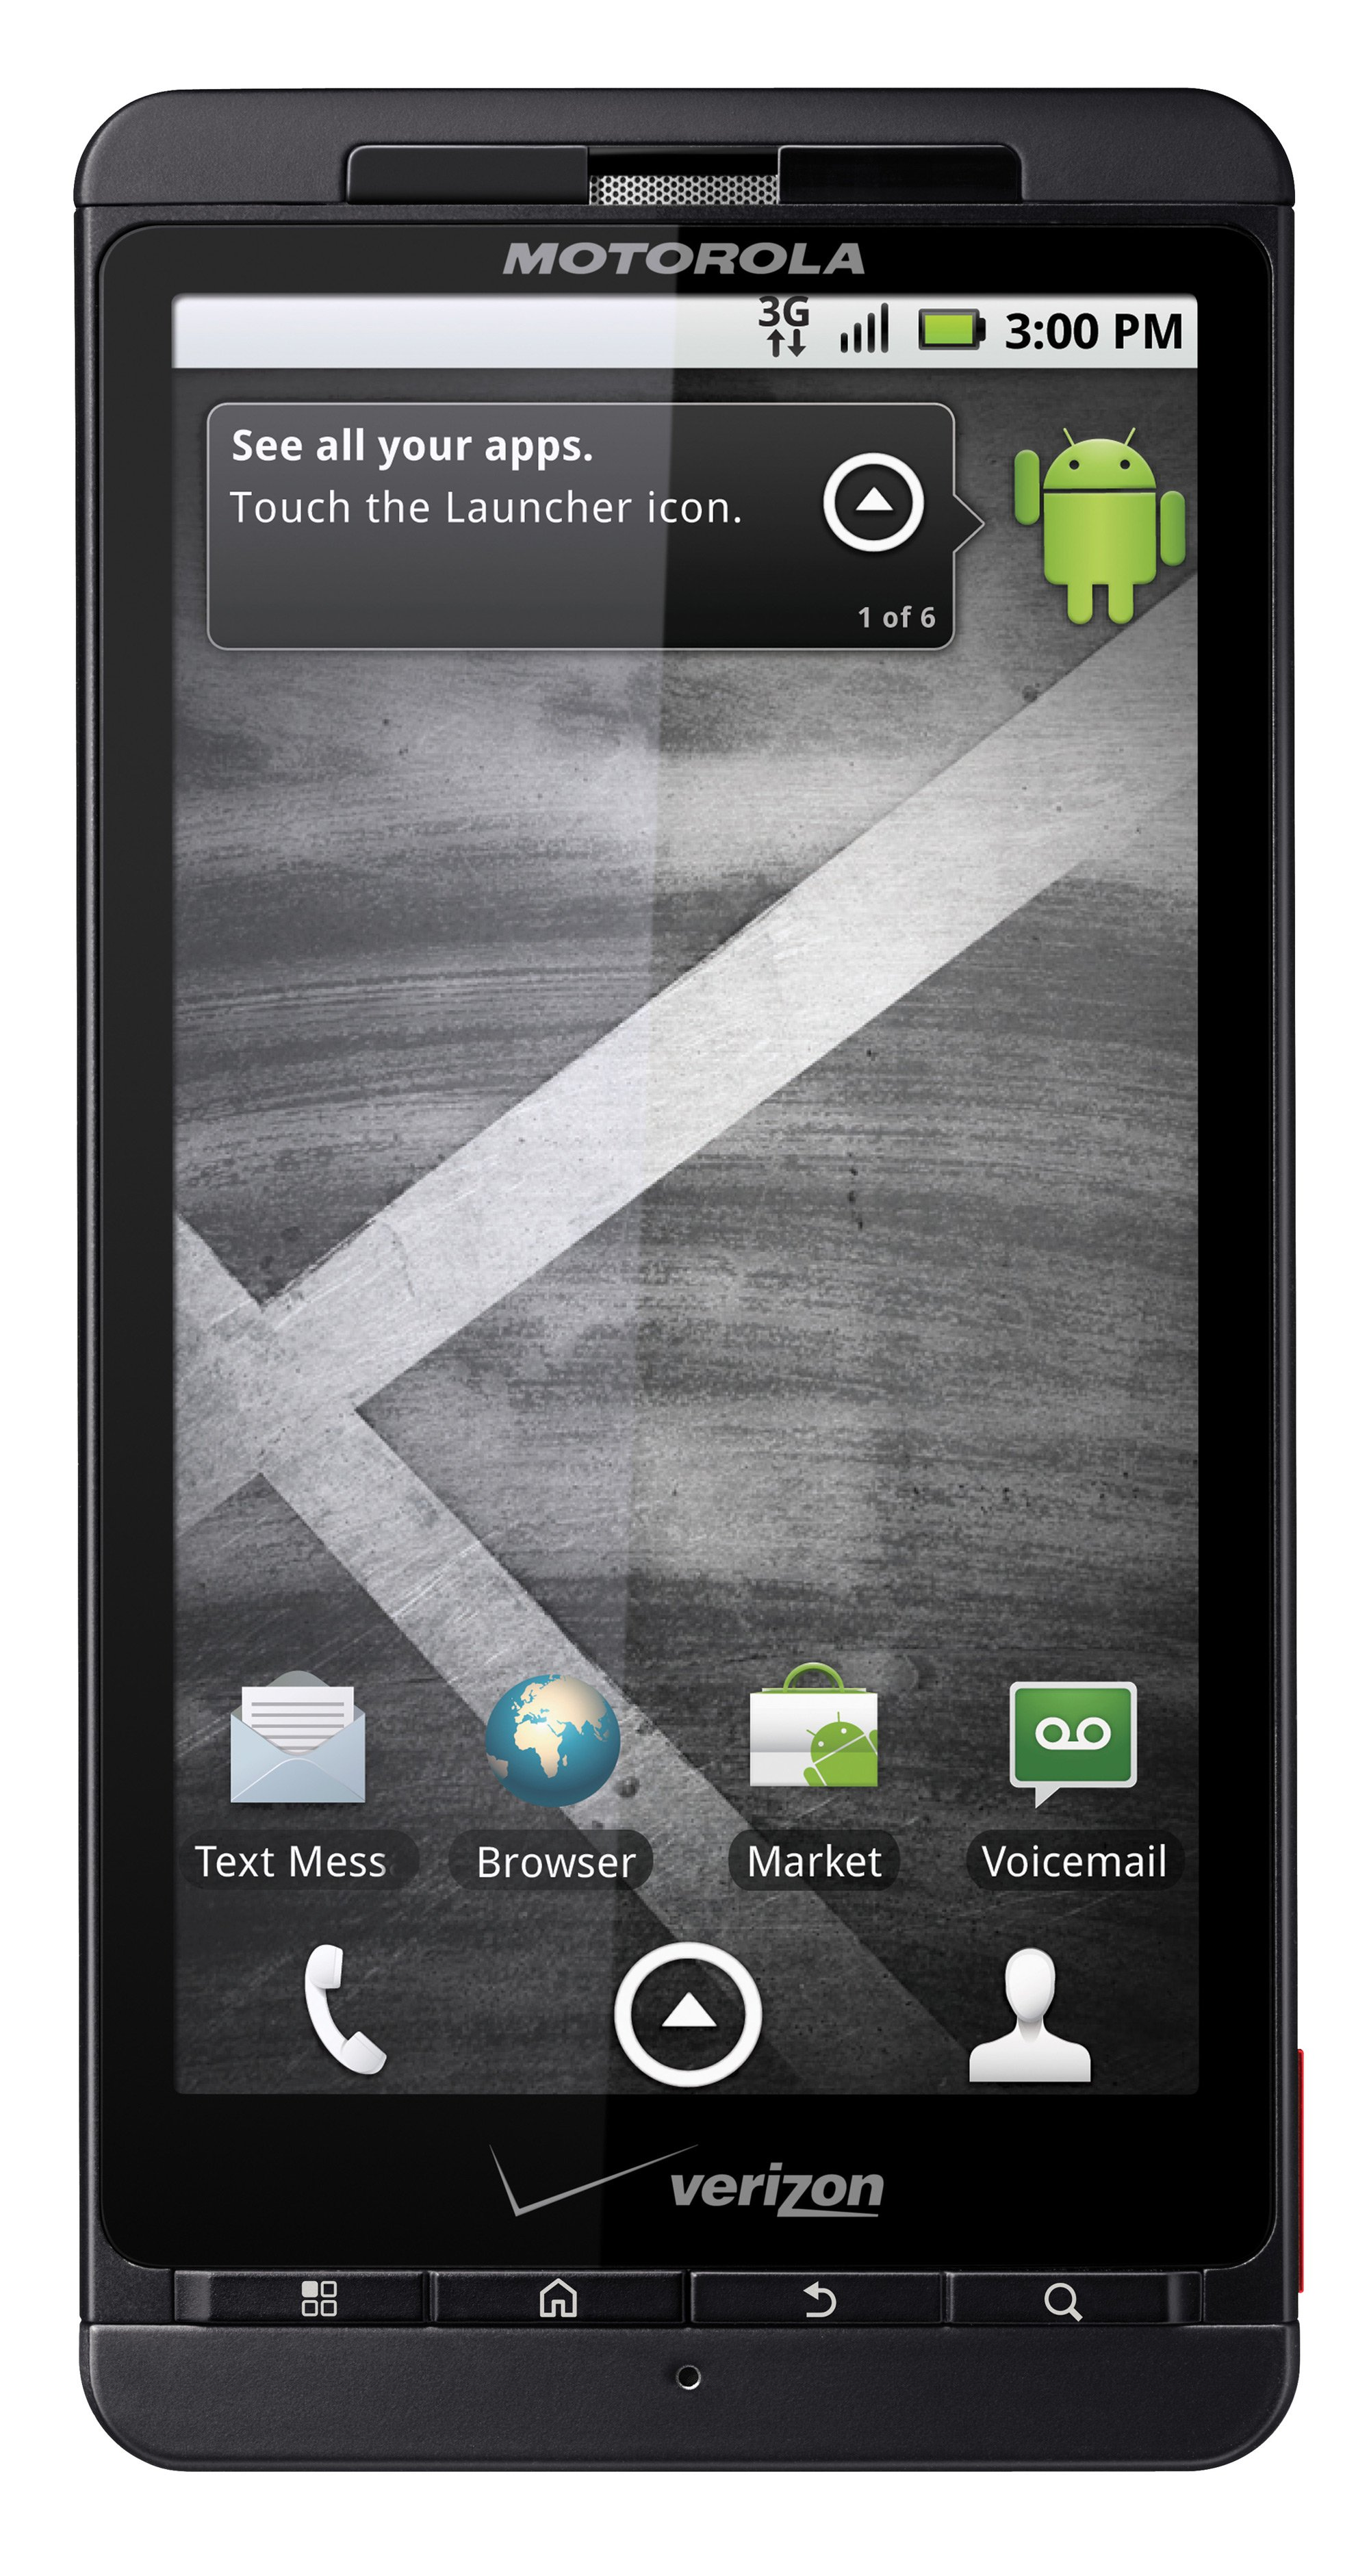 Motorola Droid Razr Maxx Hd How Do I Clear Web Browsing History Motorola  Droid X Images